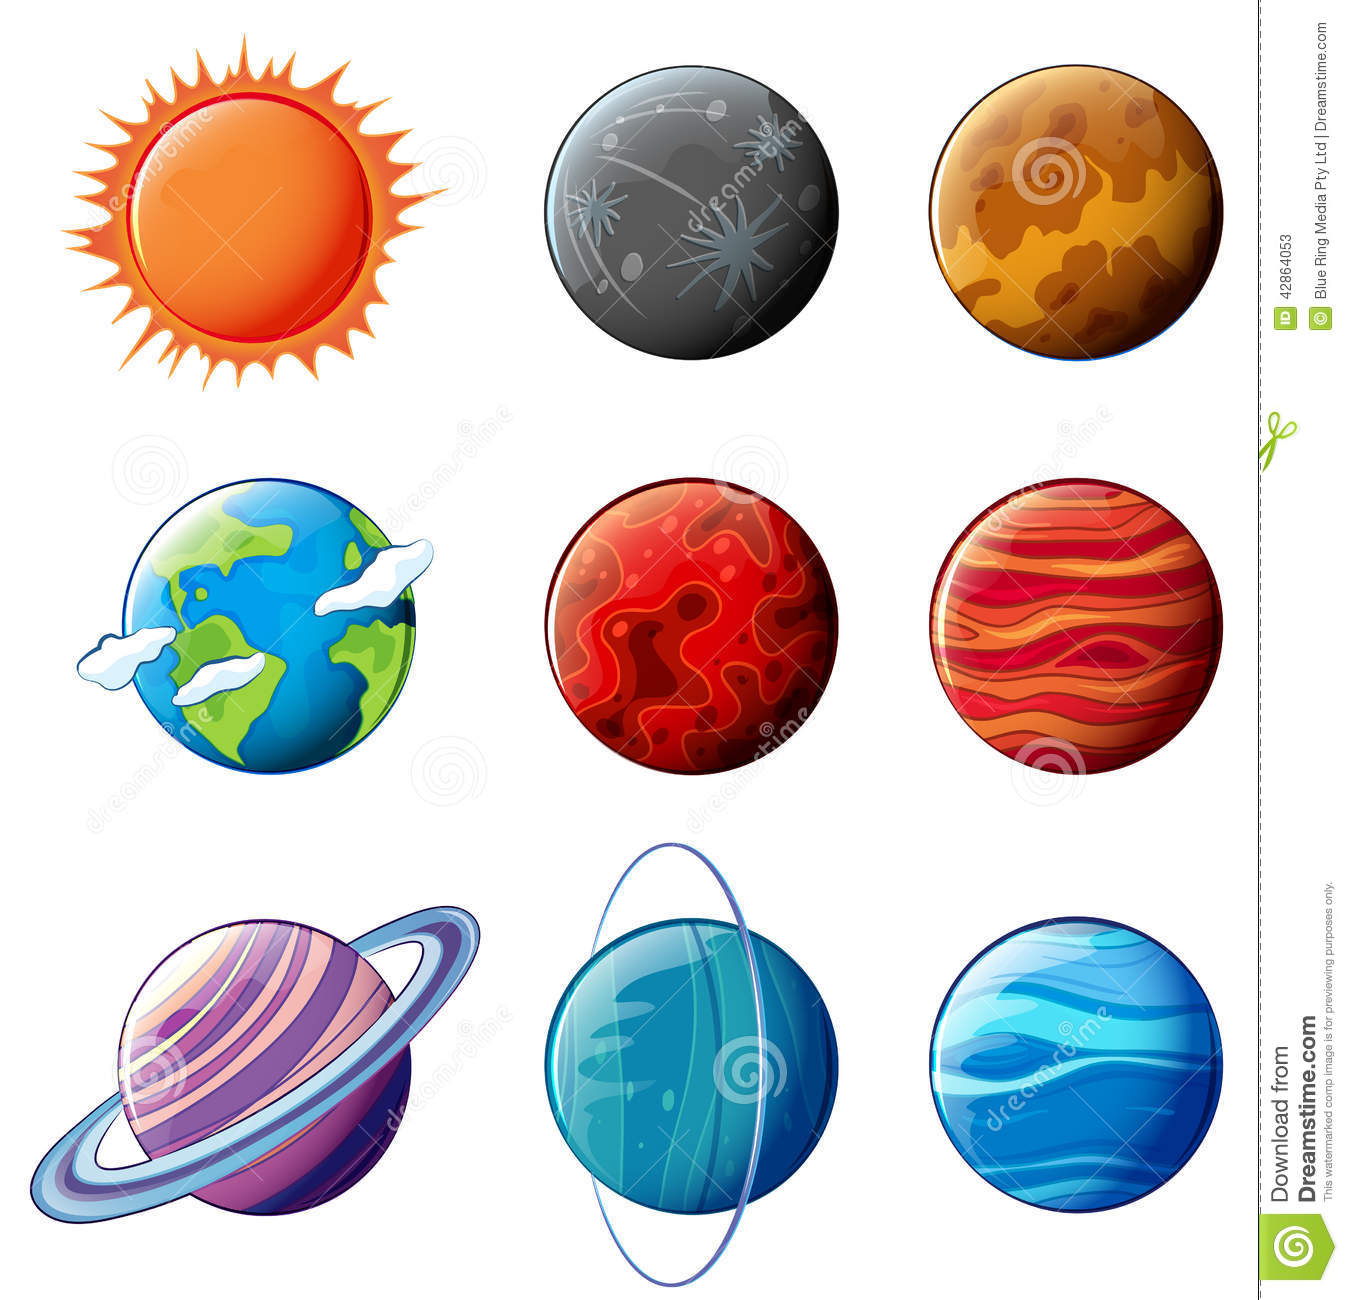 Planets Of The Solar System Stock Vector - Image: 42864053